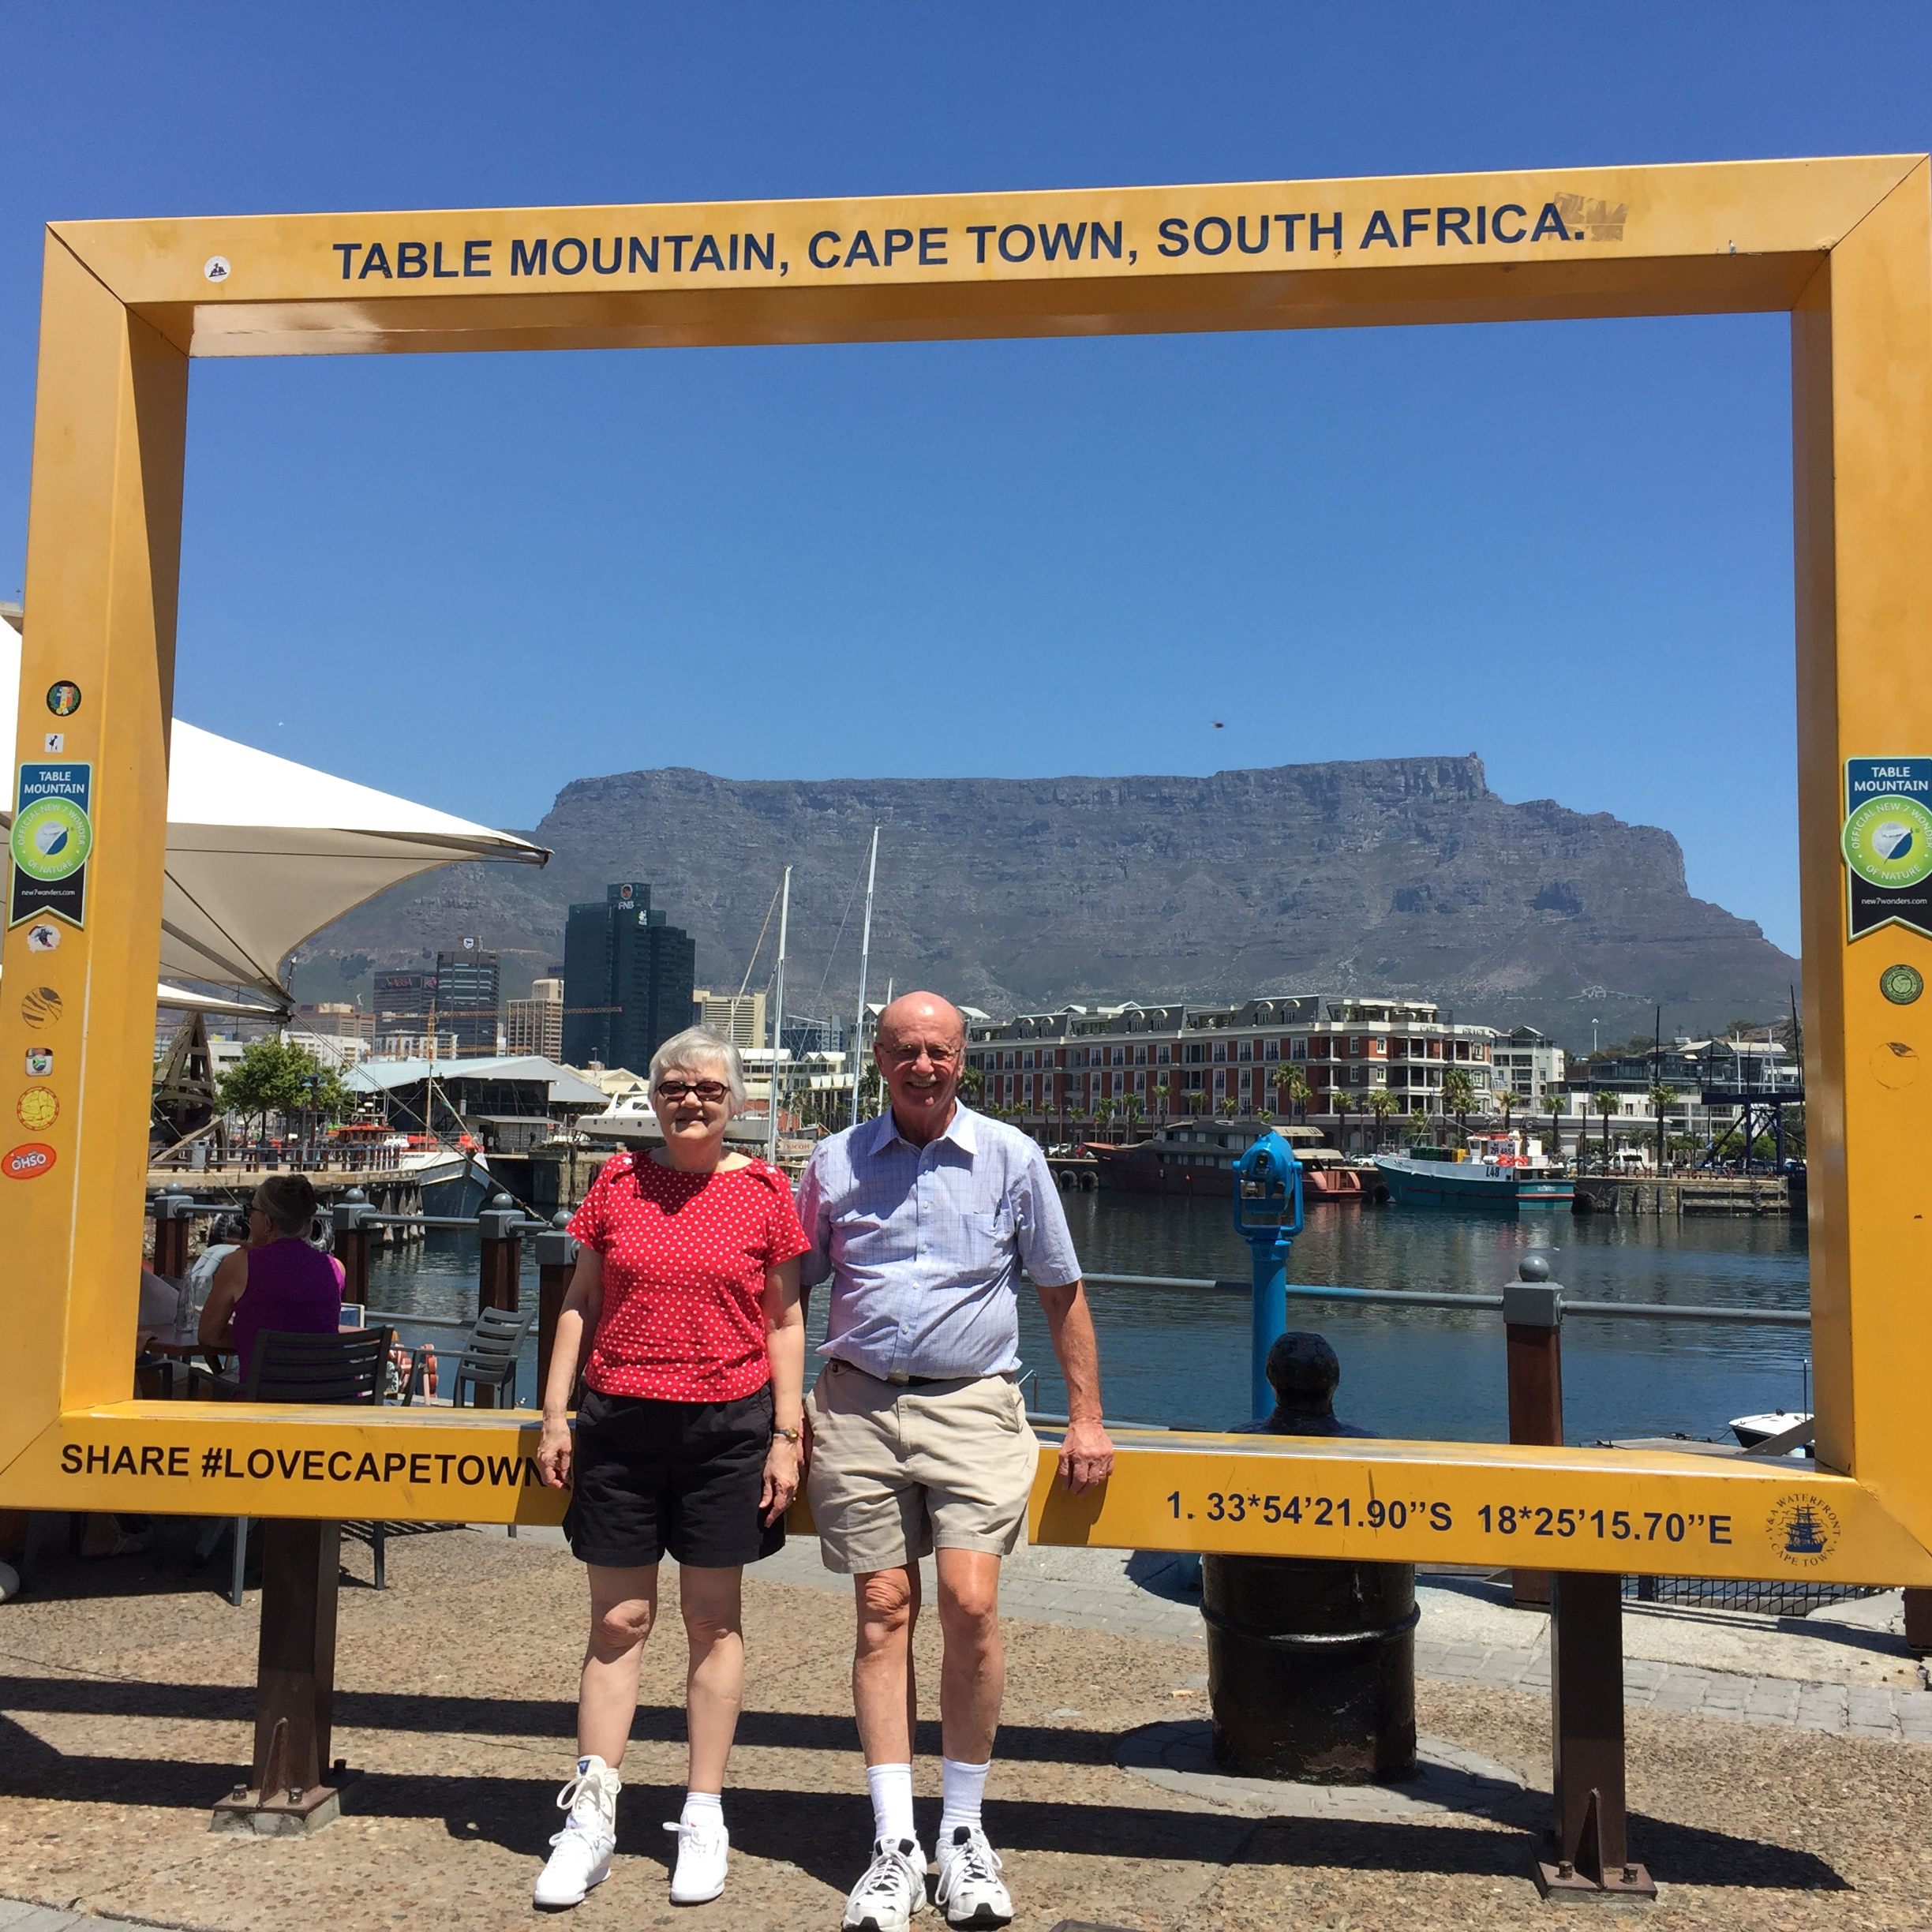 Grandma and Grandpa Malcolm smiling in Cape Town!